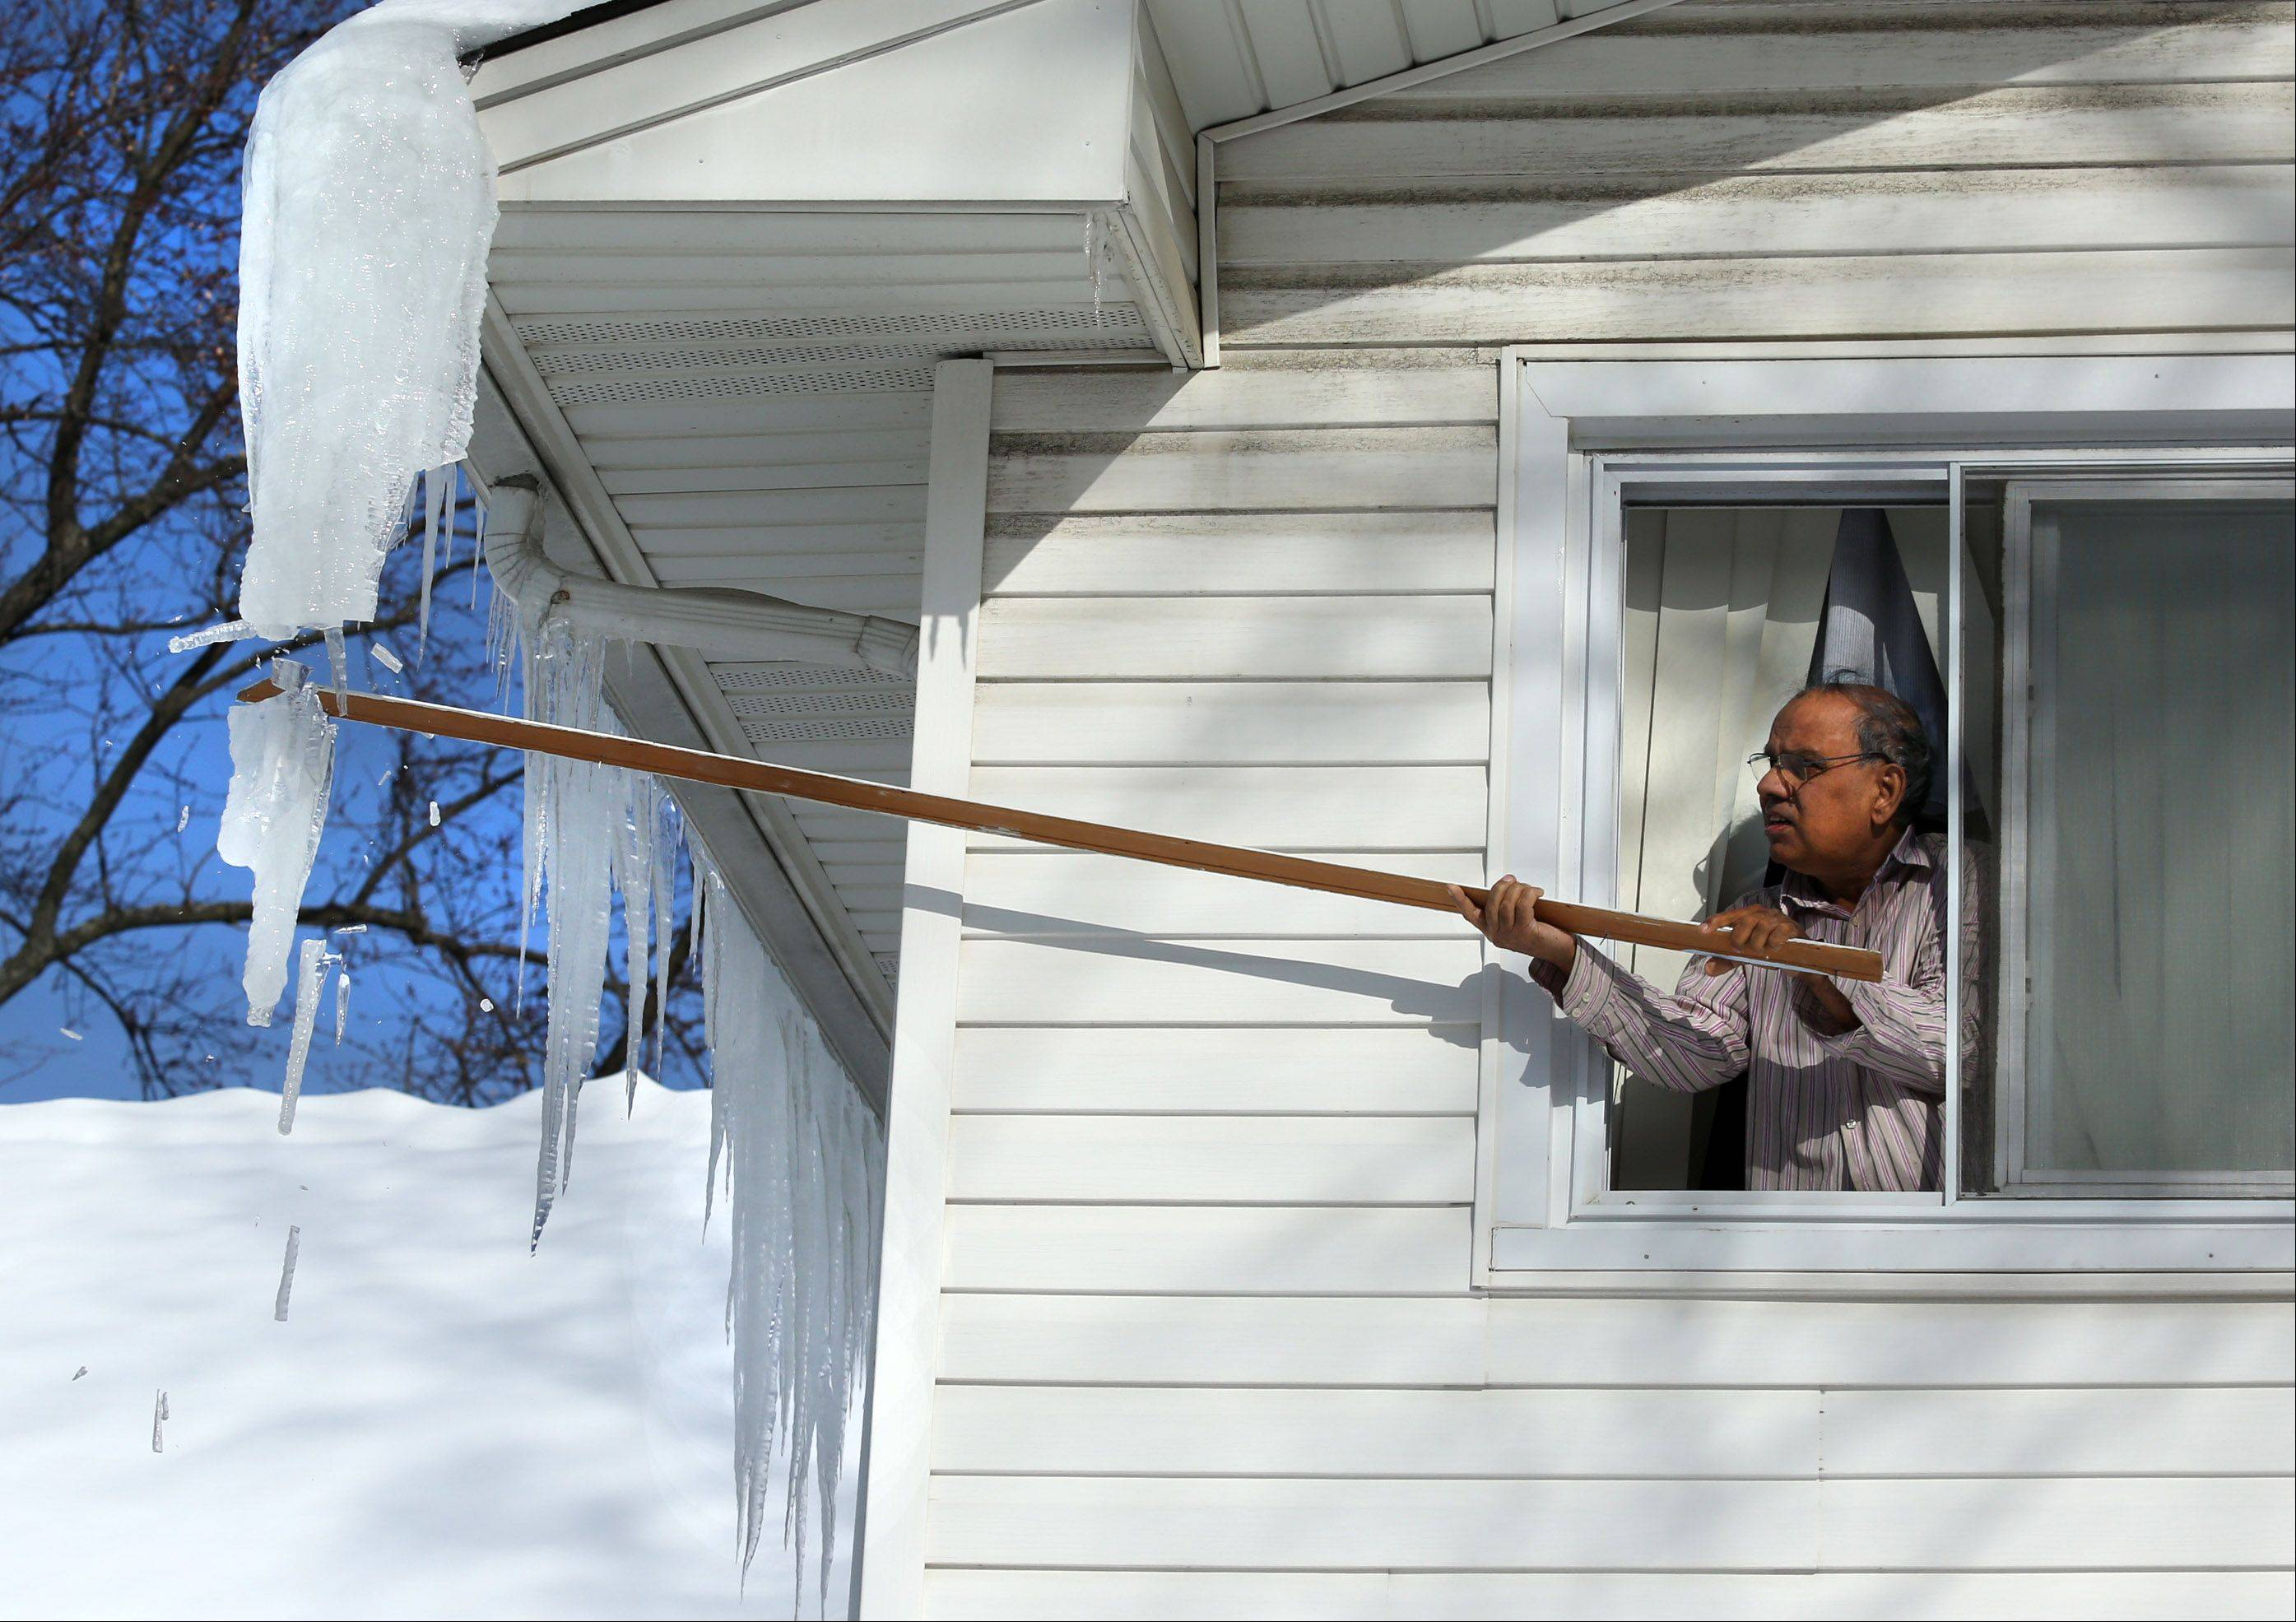 A long stick turns out to be just the tool for Mohammad Mohyuddin to clear icicles from his Rolling Meadows home.